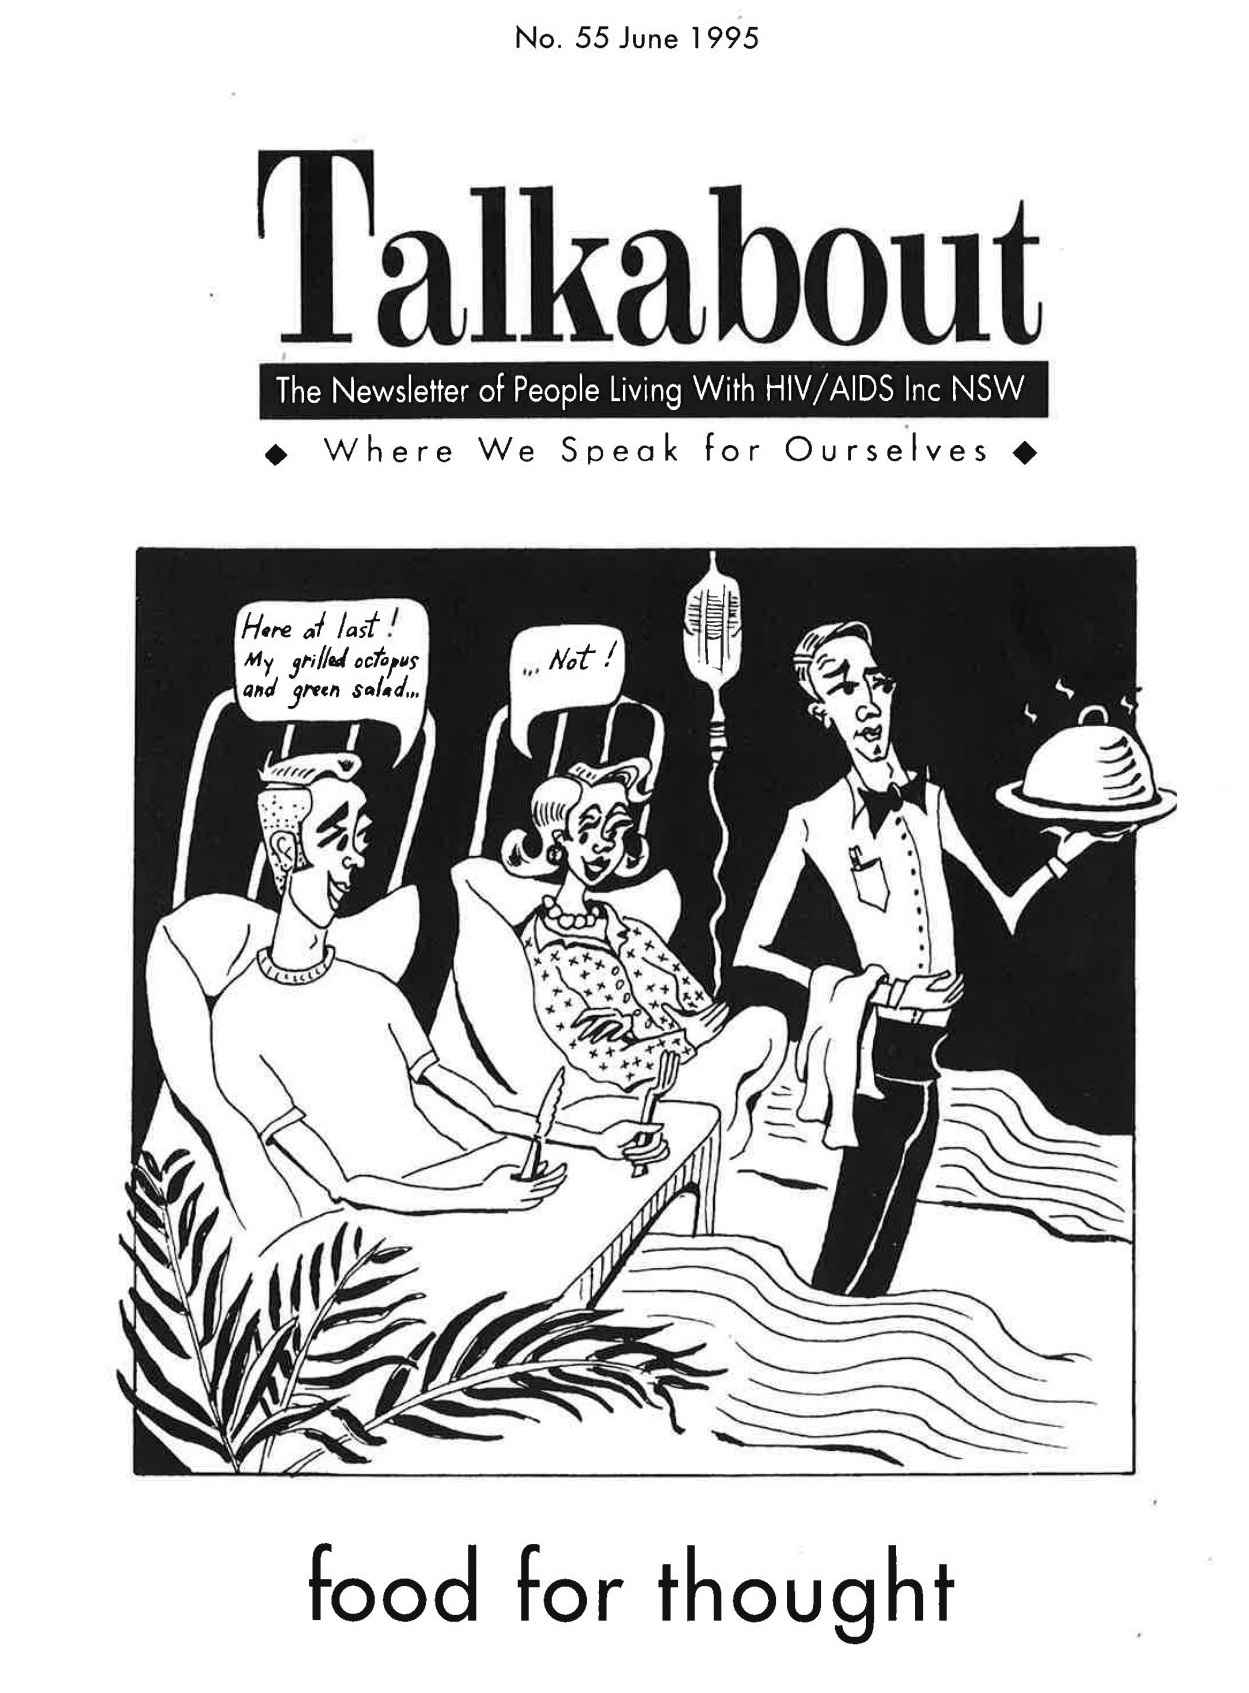 Talkabout Edition #55